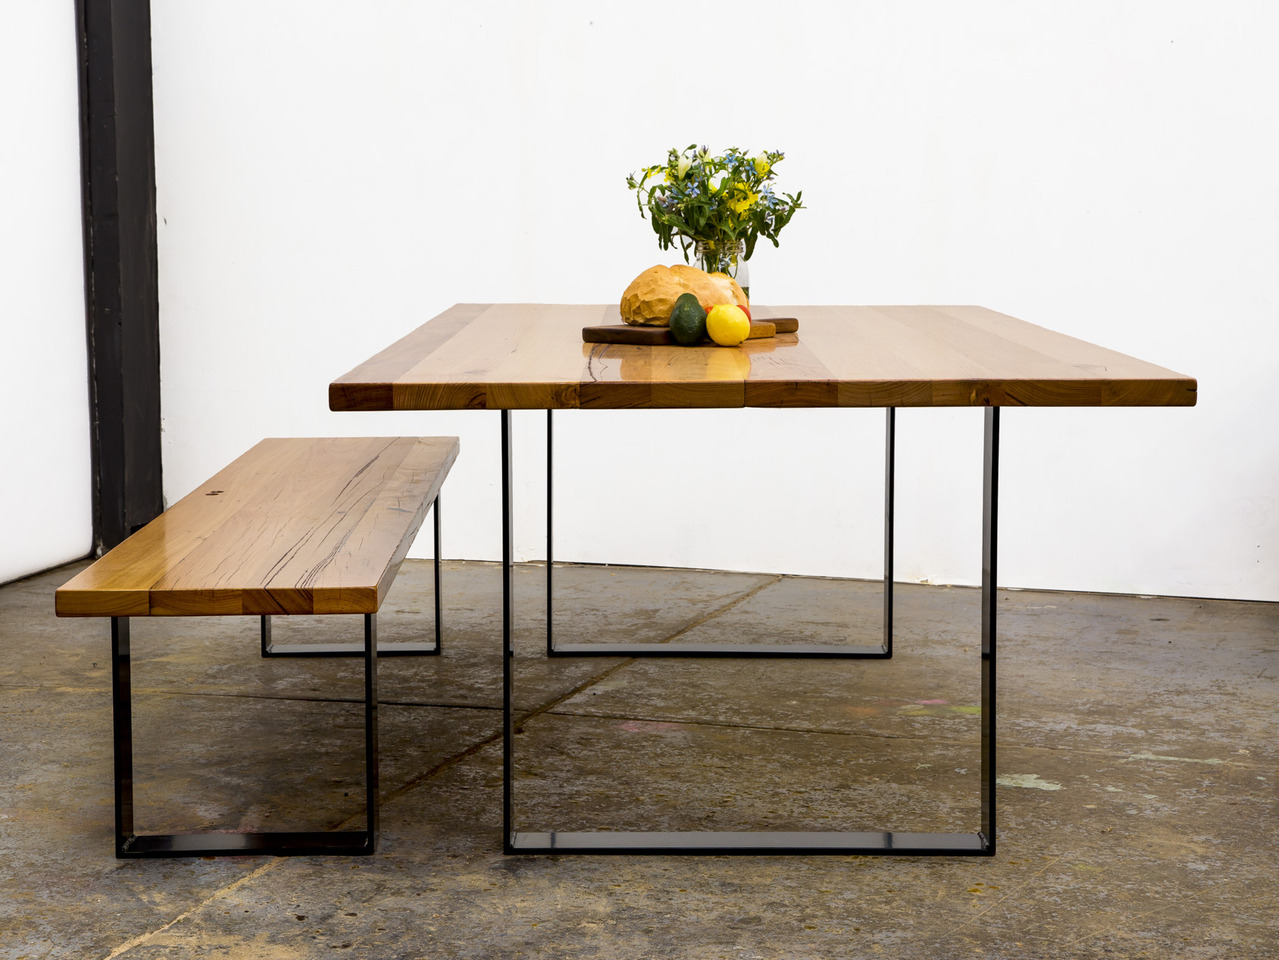 Steel Square Table By Glencross Furniture Handkrafted